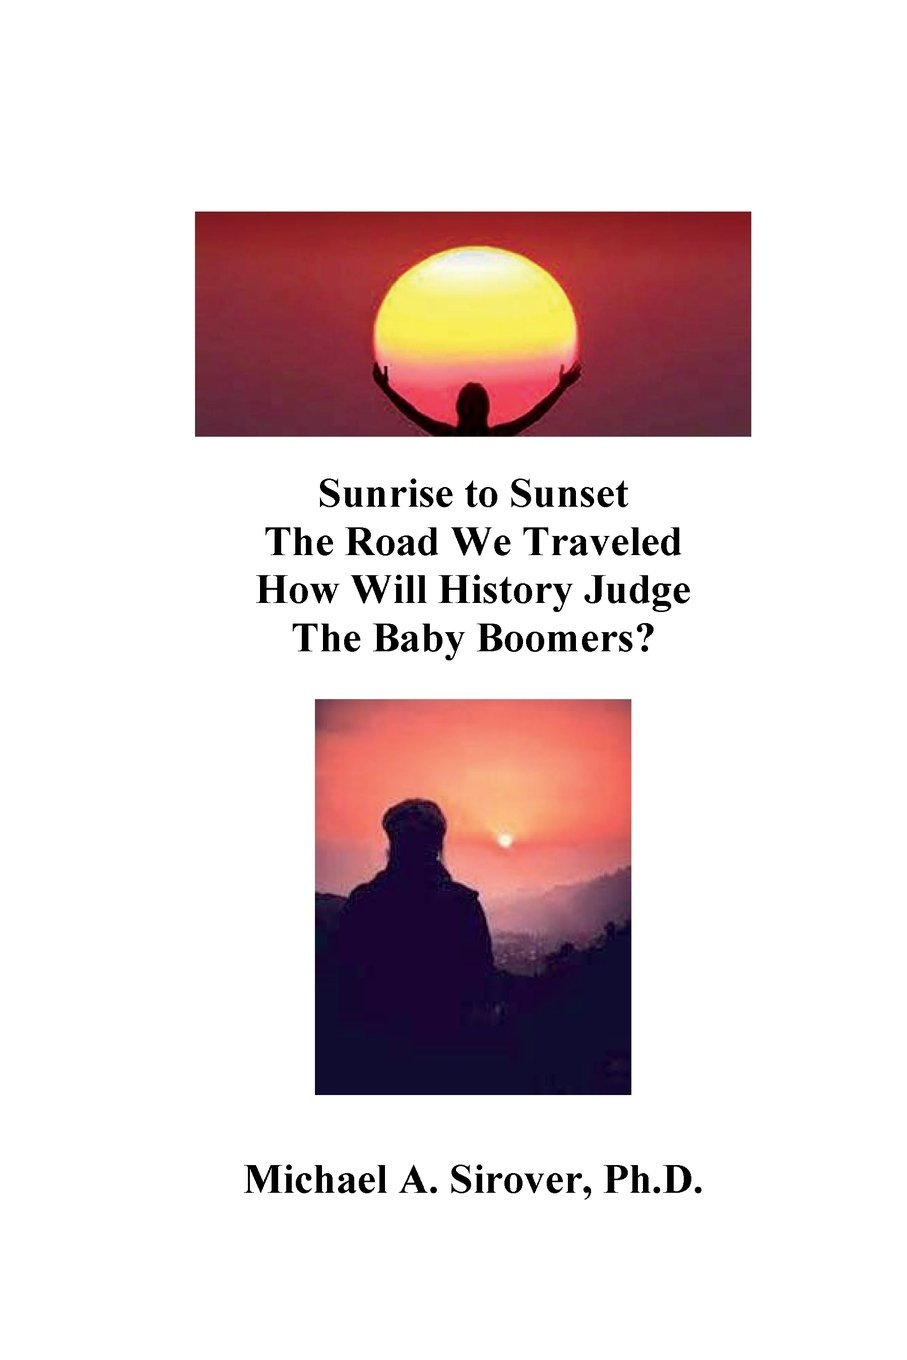 Download Sunrise to Sunset The Road We Traveled How Will History Judge the Baby Boomers? ebook